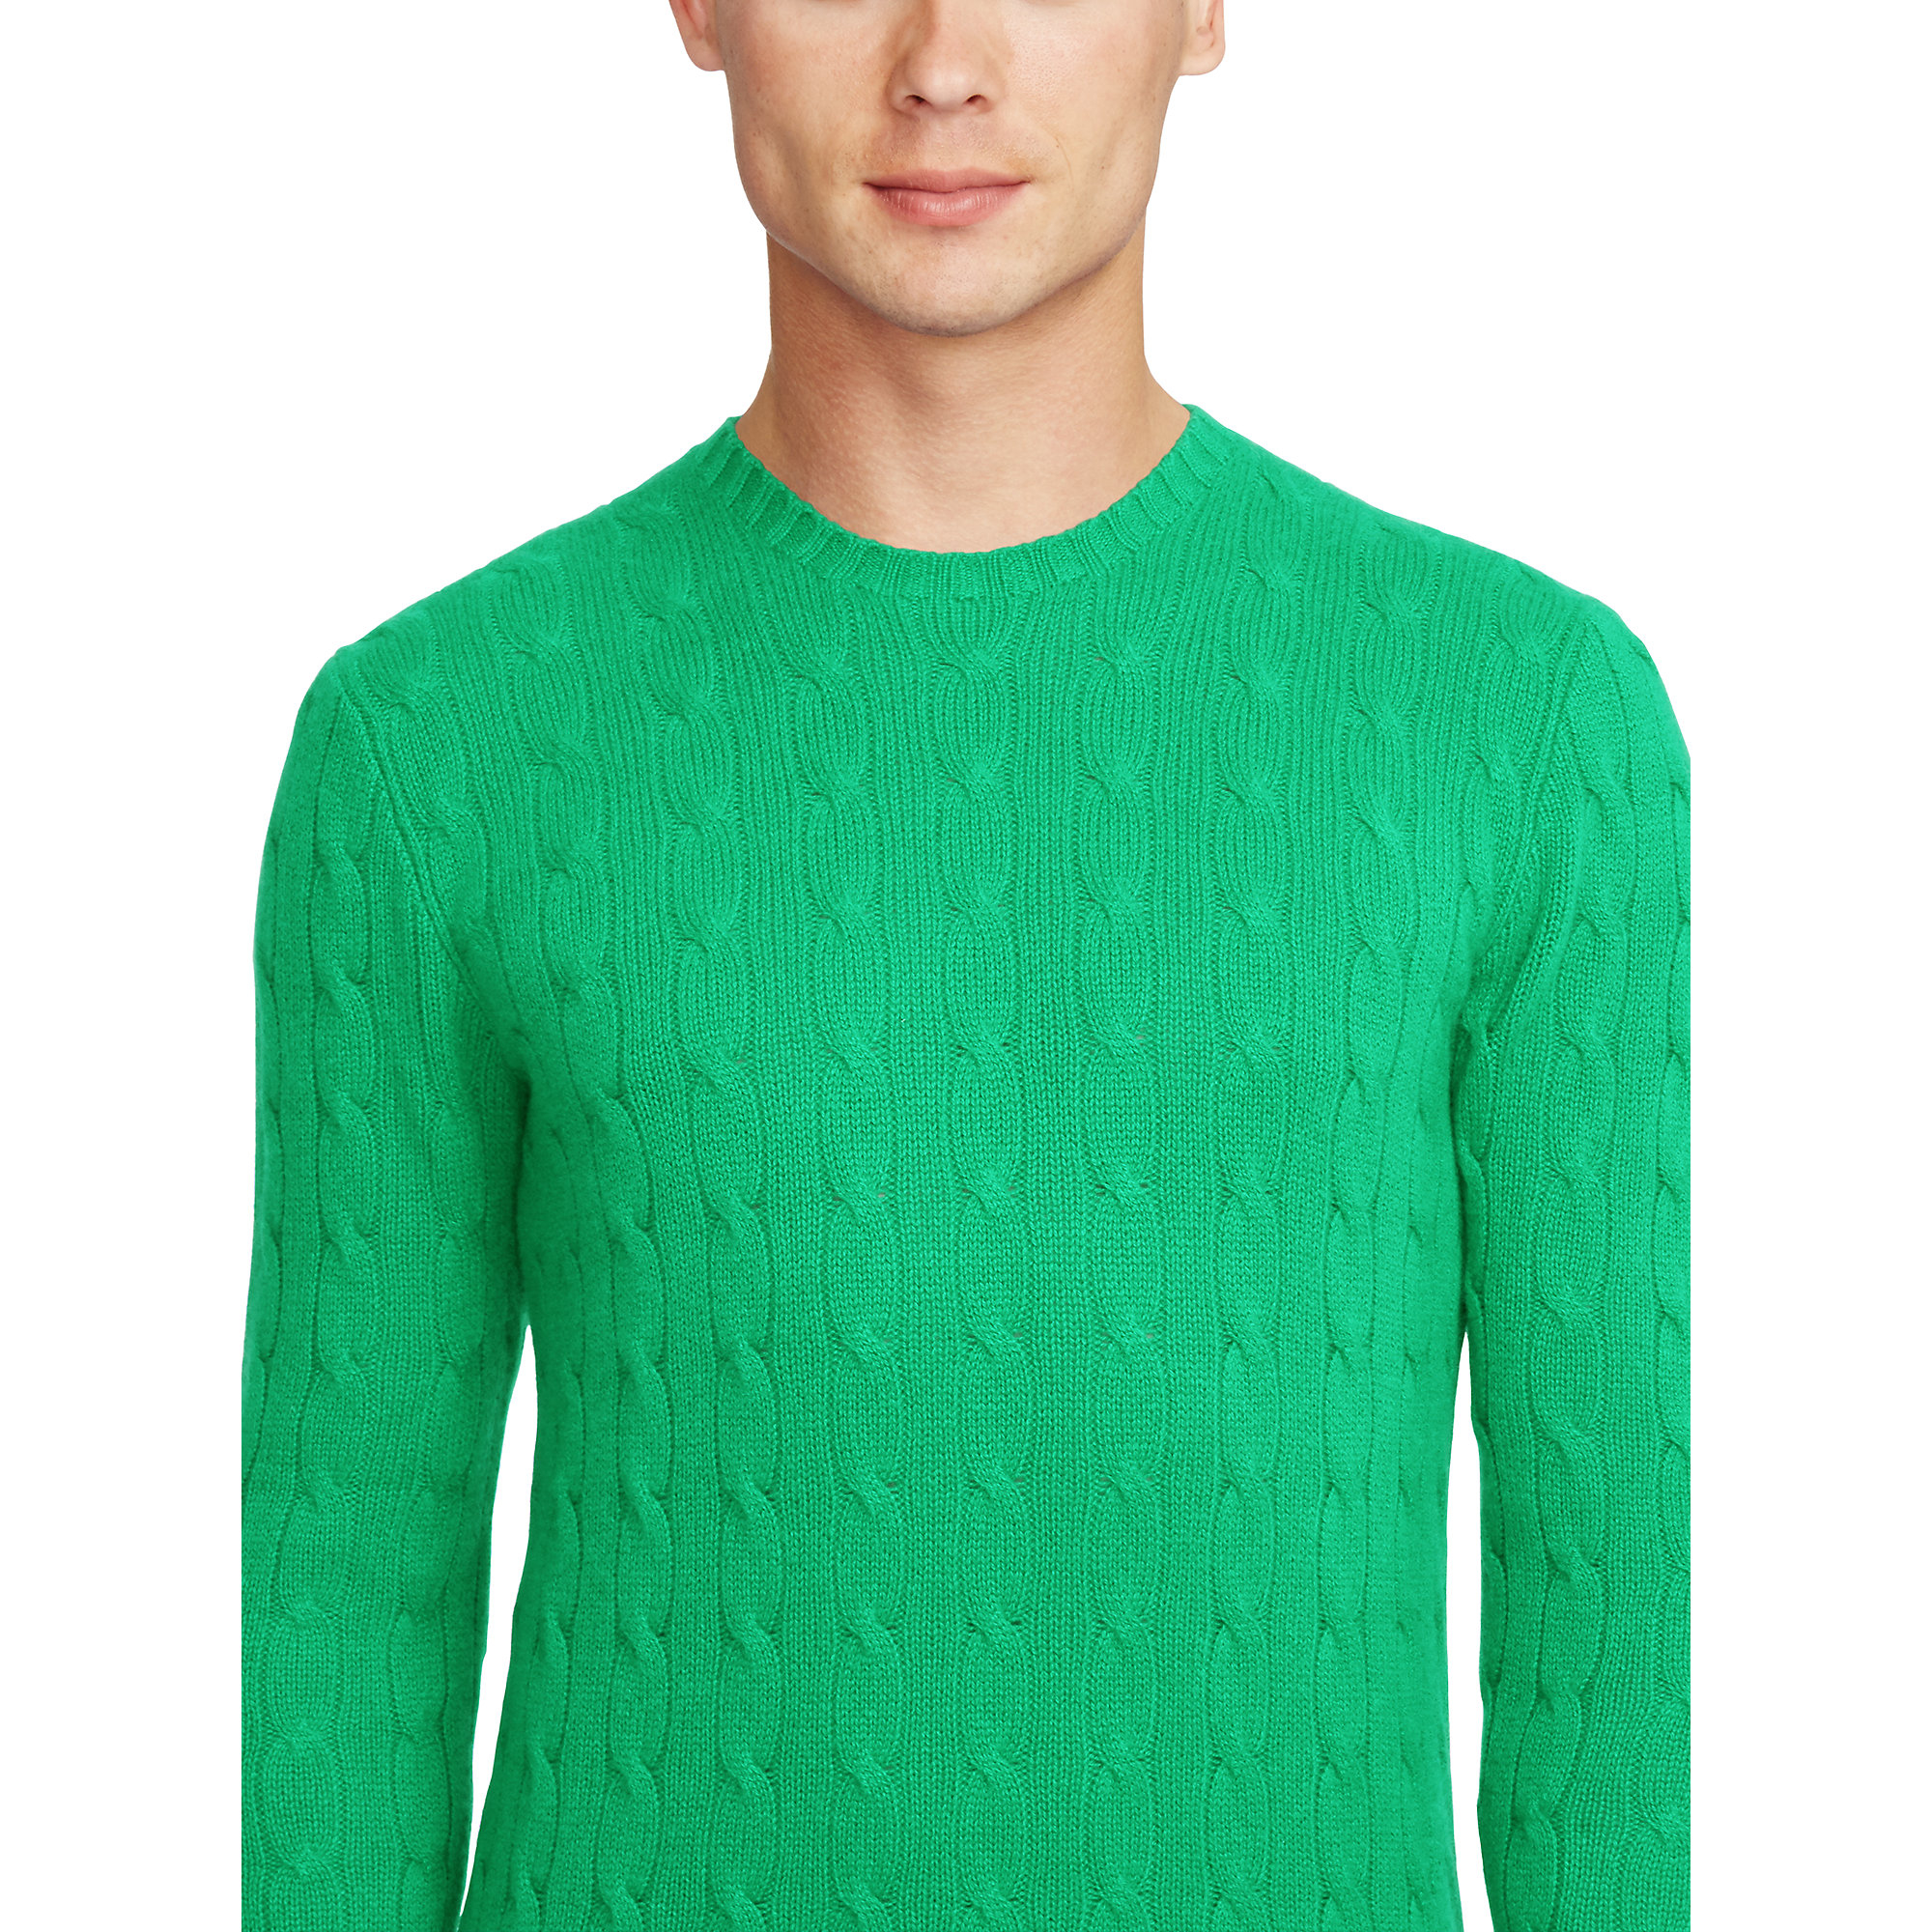 a3a115c513bd75 Lyst - Polo Ralph Lauren Cable-knit Cashmere Sweater in Green for Men